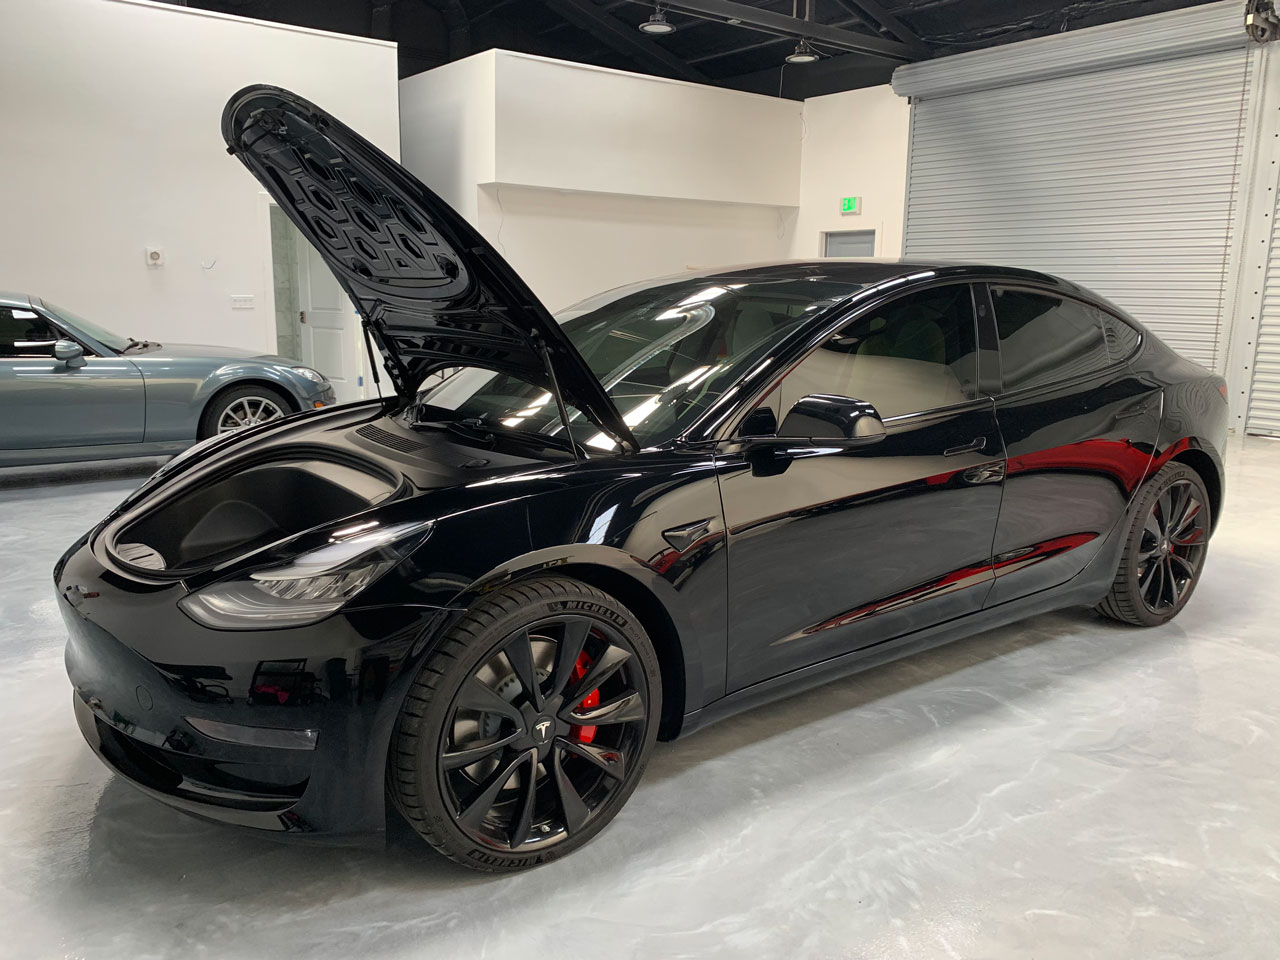 A black Tesla with a ceramic coating applied.